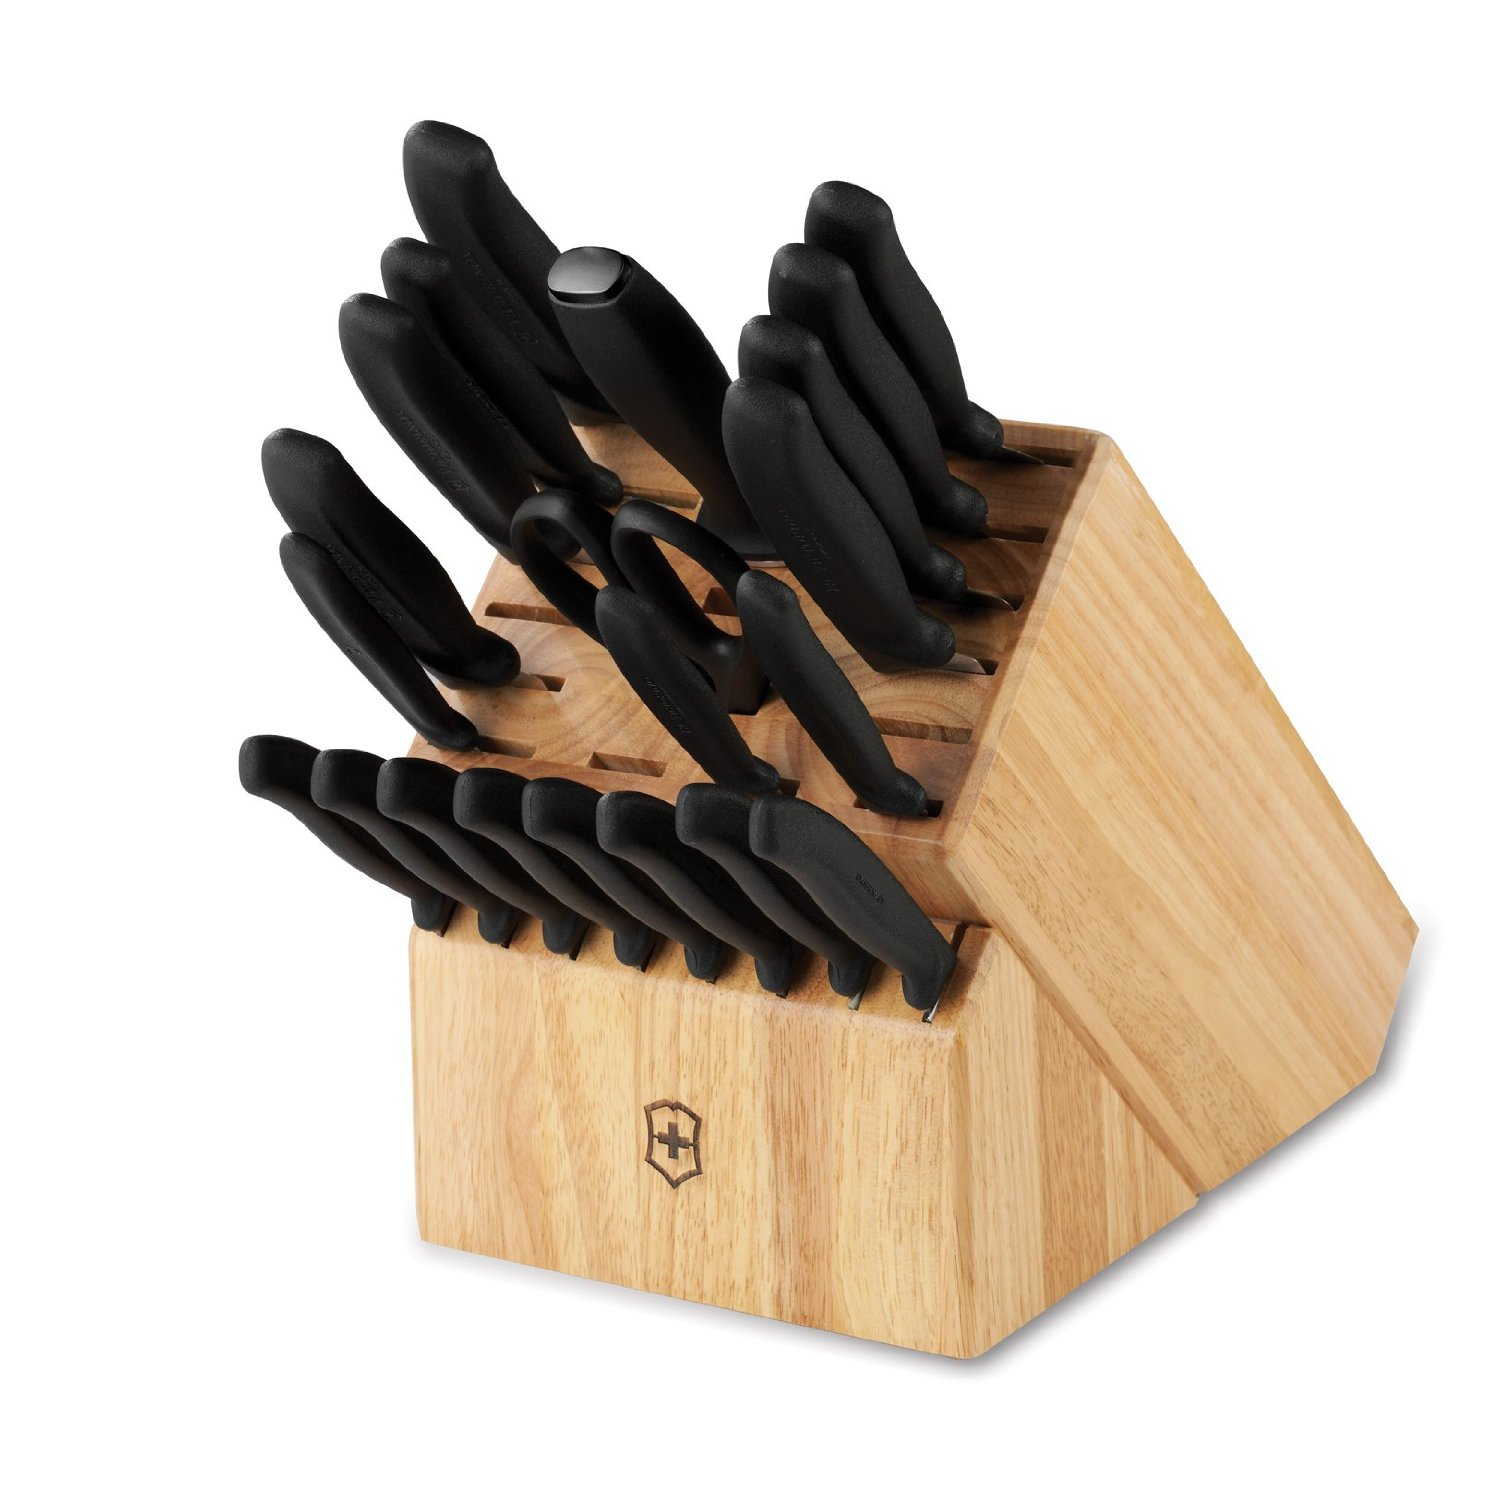 Best Kitchen Knife Sets Best Kitchen Knifes Chef Knife Sets